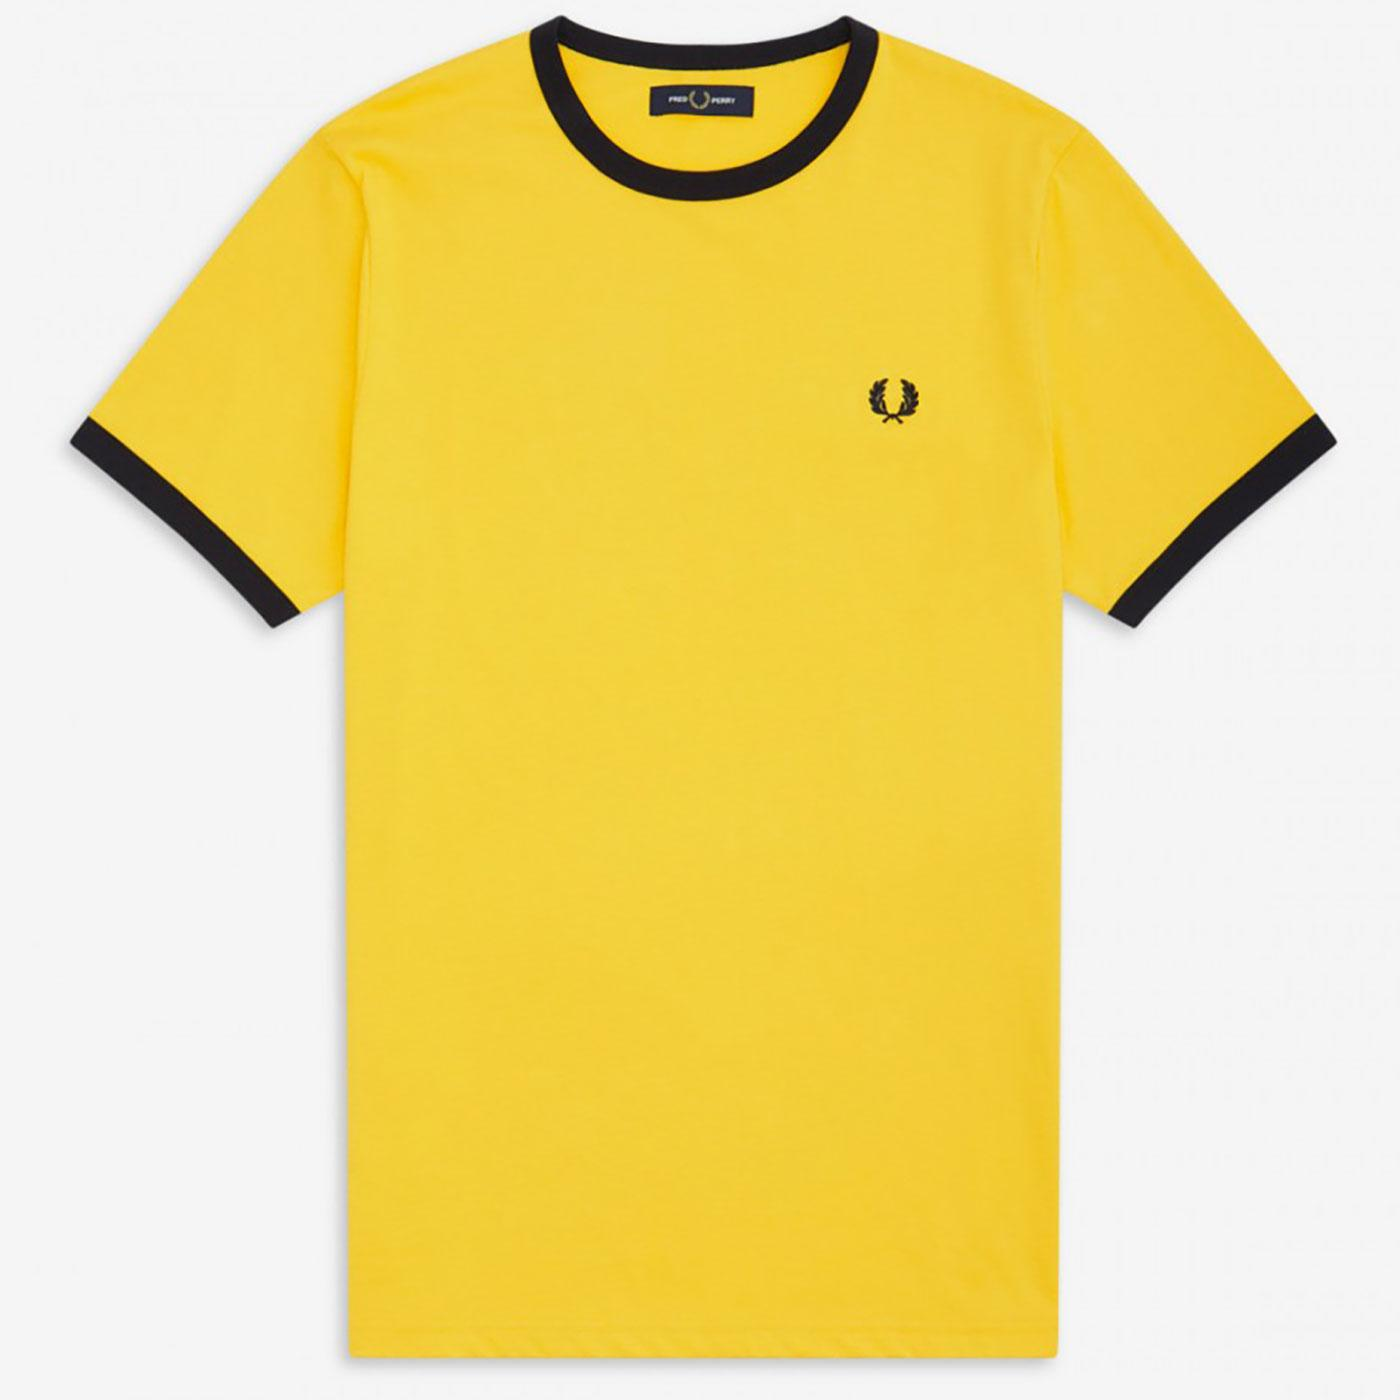 FRED PERRY Retro Mod Crew Neck Ringer Tee SUNGLOW